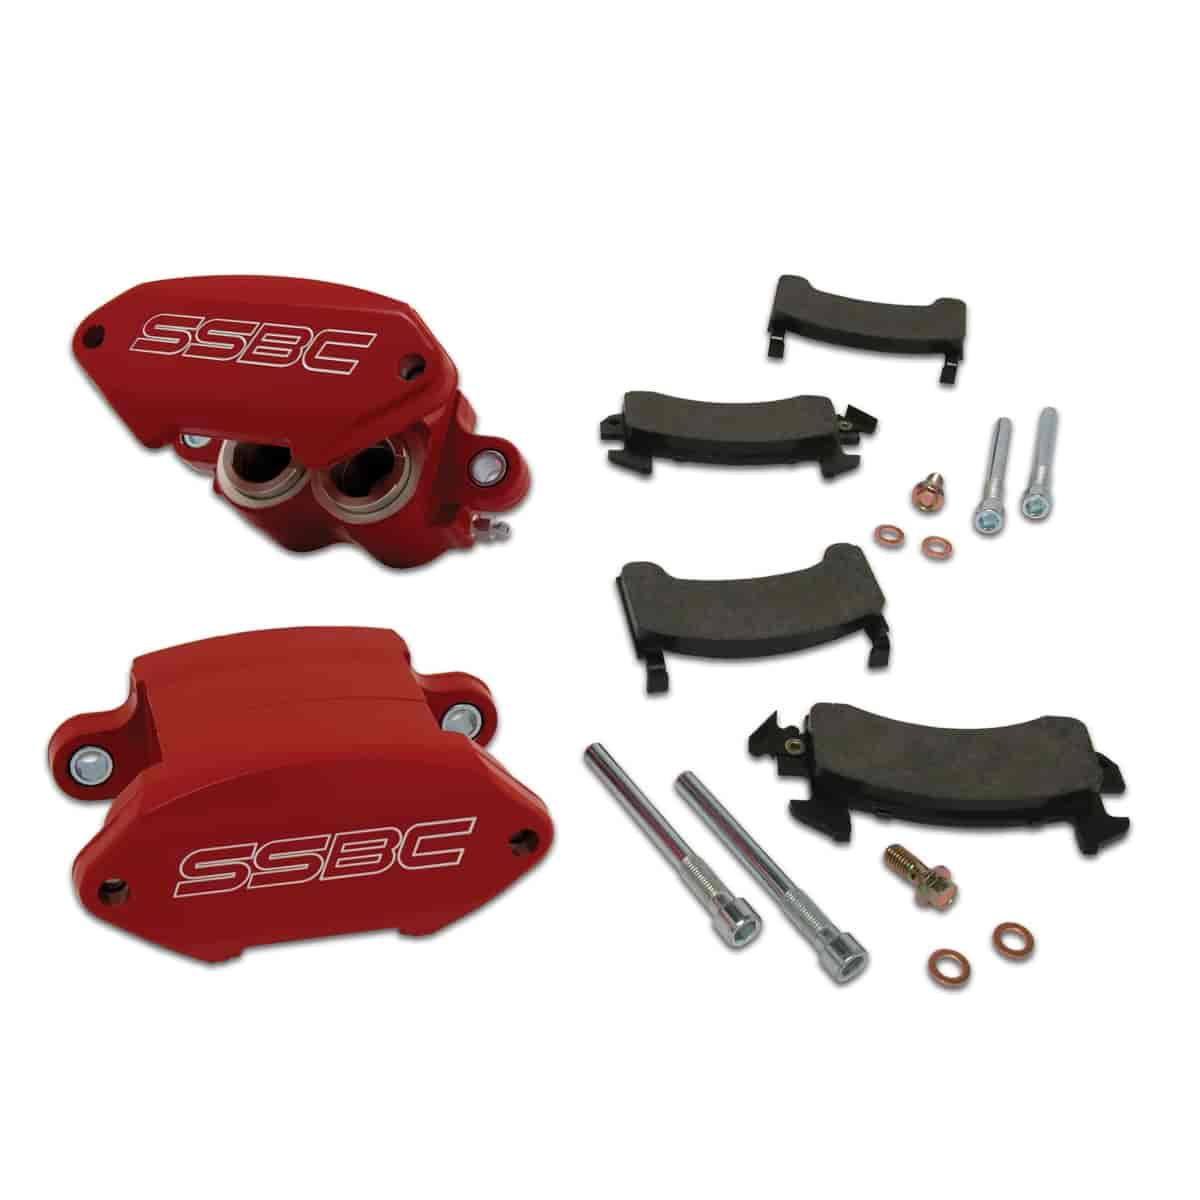 Stainless Steel Brakes A181R - Stainless Steel Brakes Sport Twin Quick Change Caliper Kits